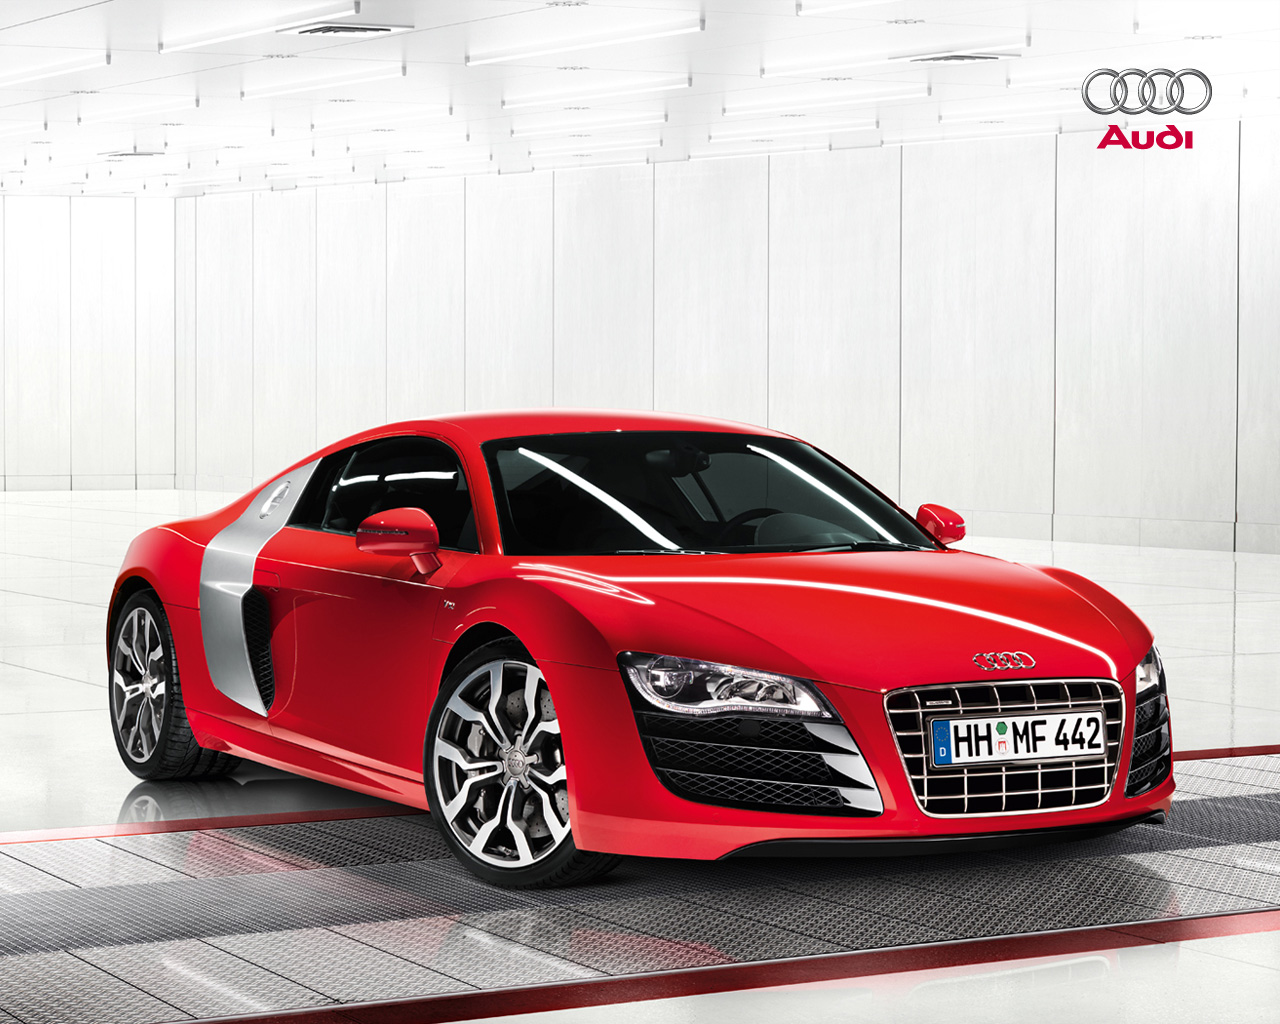 Audi R8 FSI Red Free Wallpaper For Ipad